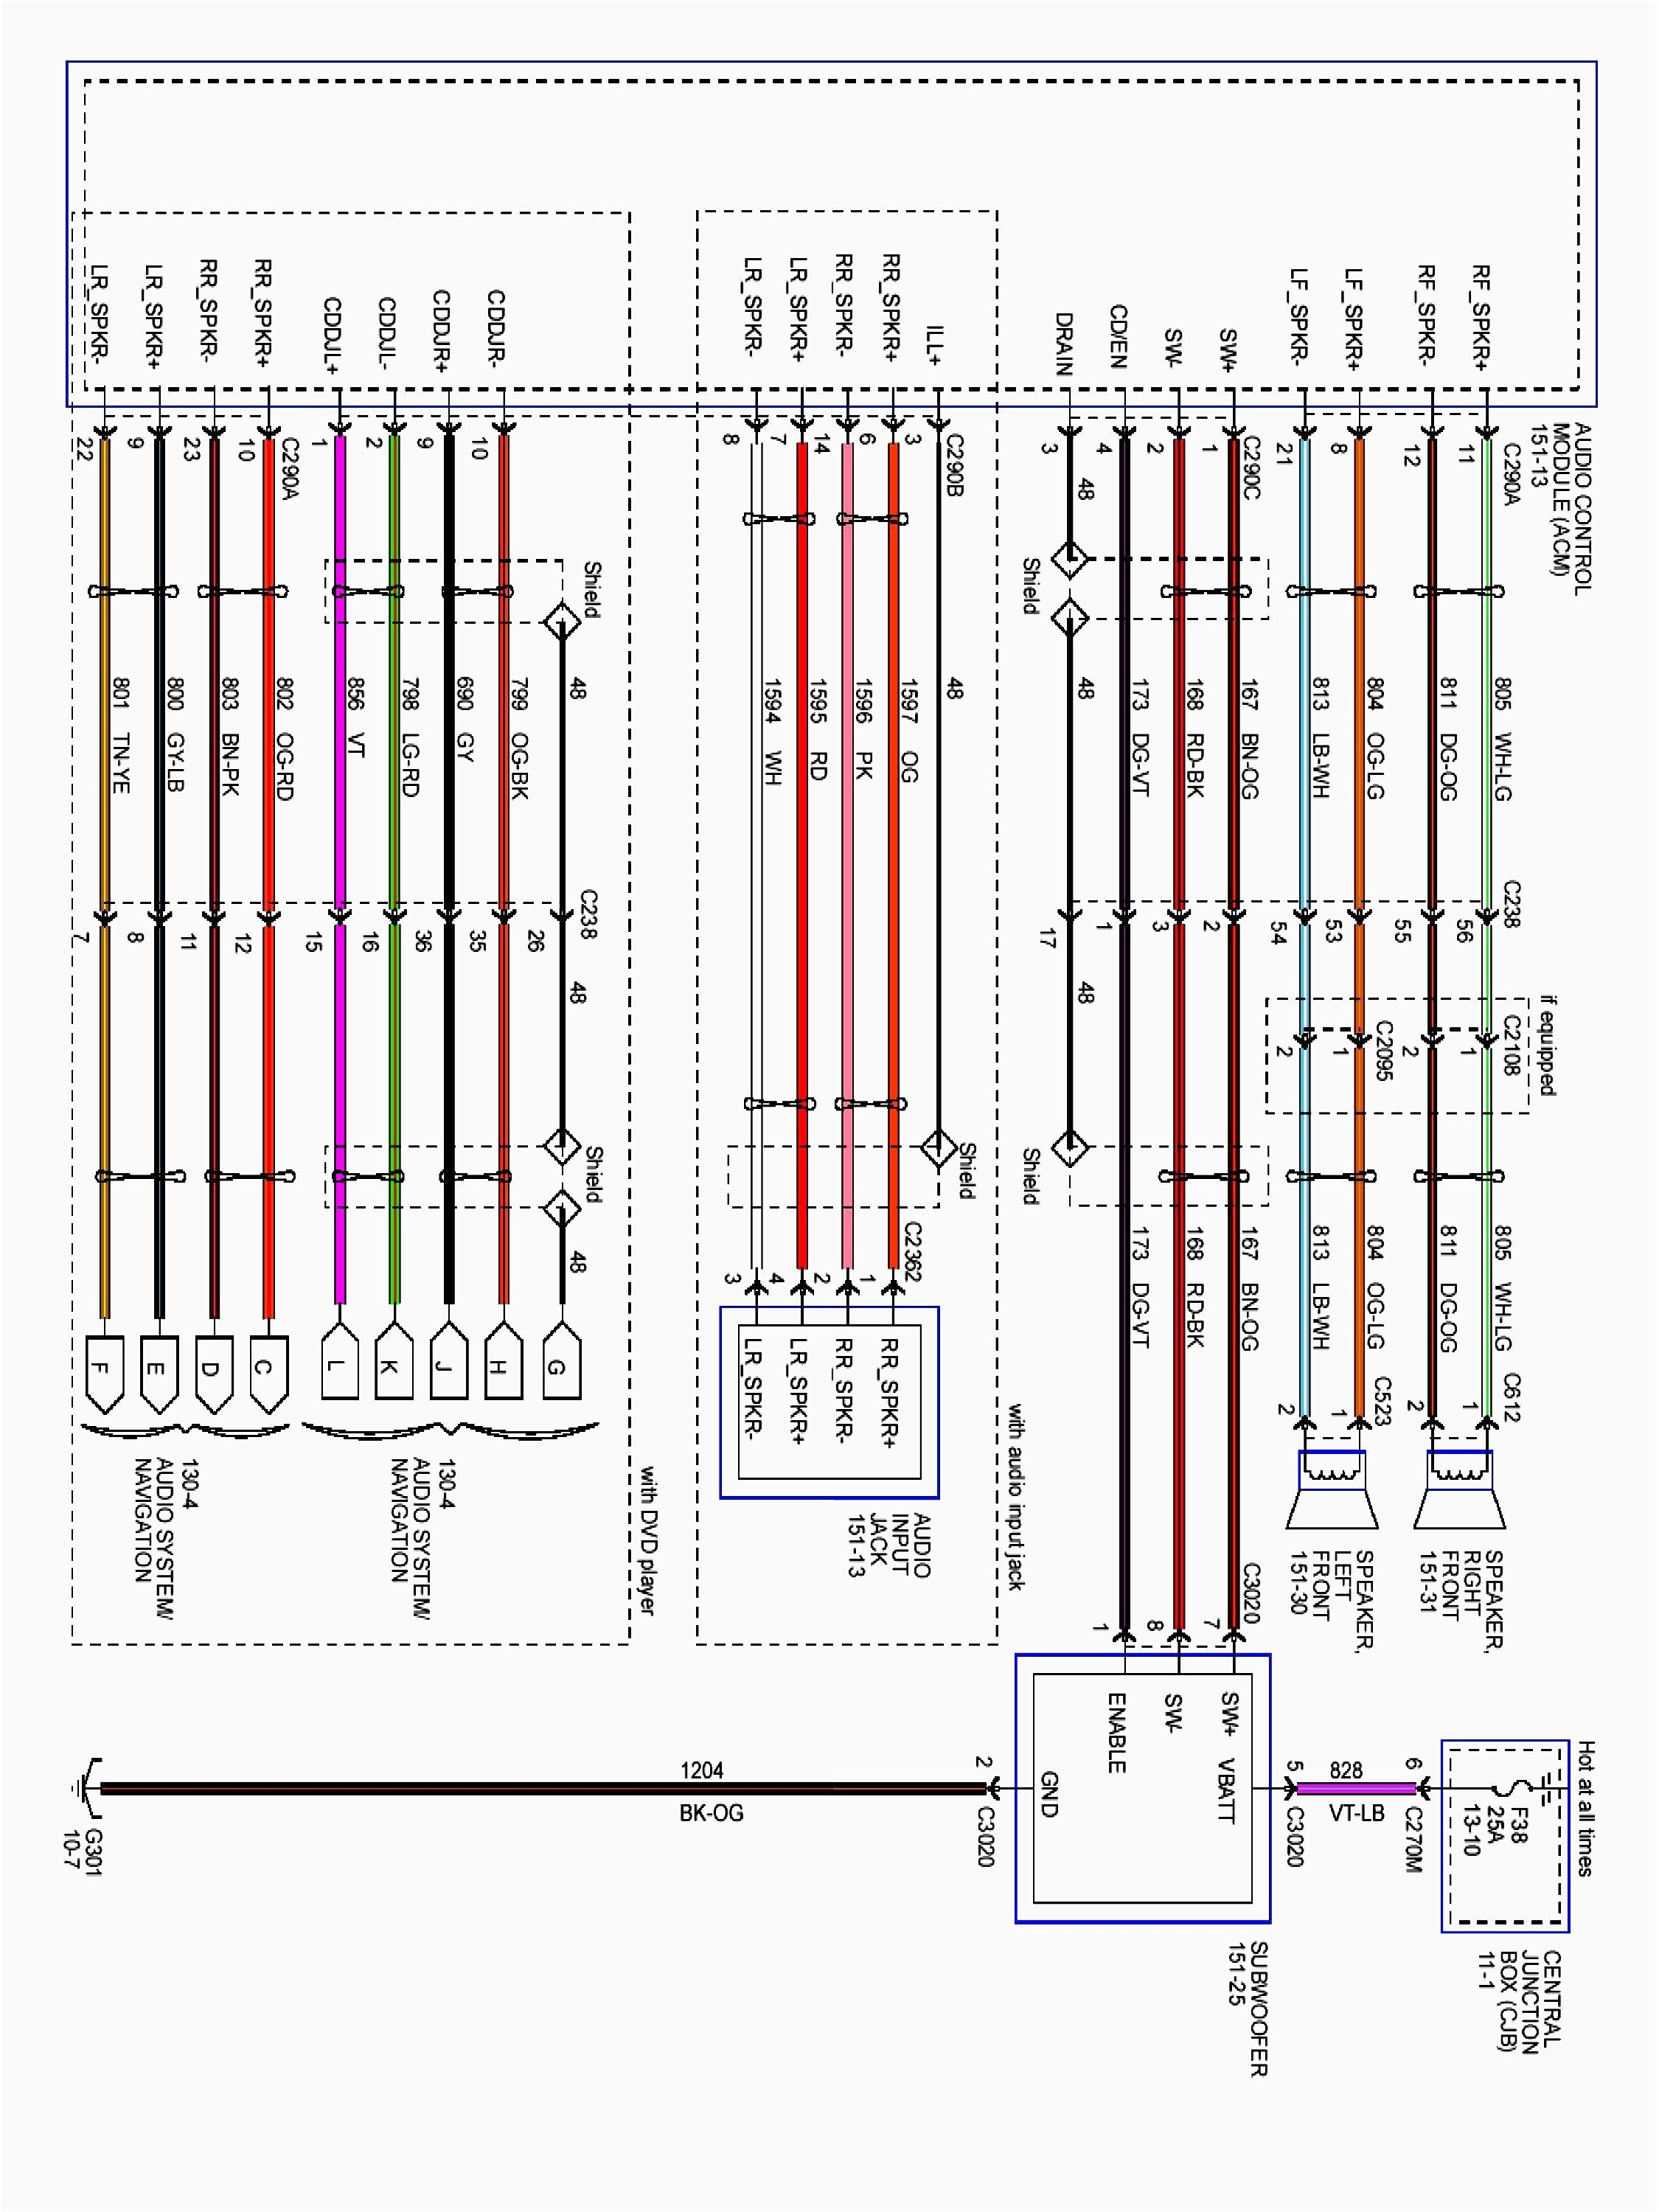 2004 ford Expedition Engine Diagram 2004 ford F 150 Wiring Schematic Cmcv Reveolution Wiring Diagram • Of 2004 ford Expedition Engine Diagram 2000 ford Ranger Horn Wiring Another Blog About Wiring Diagram •